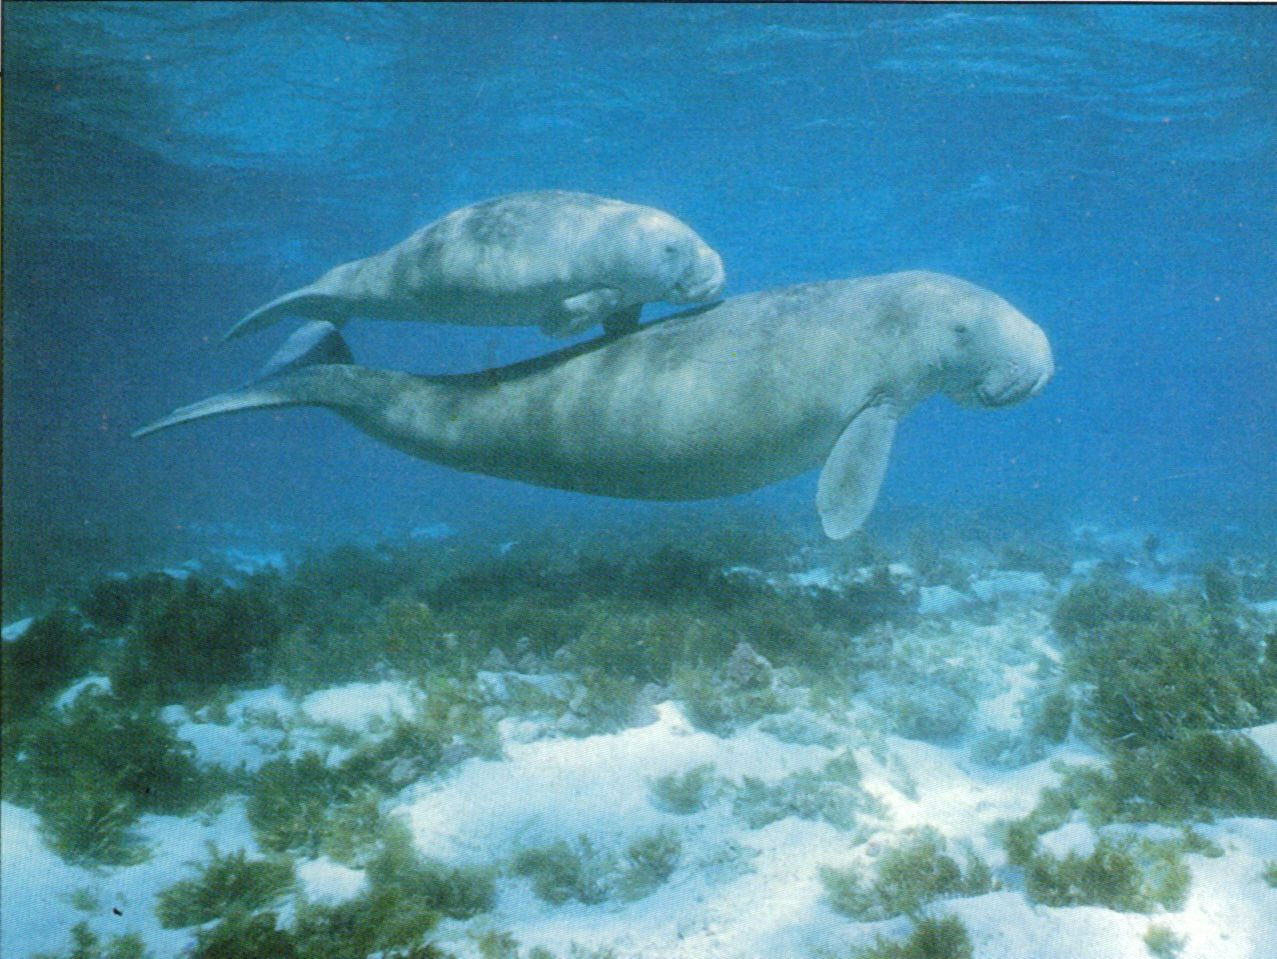 Top Animaux dugongs animaux marins QU72